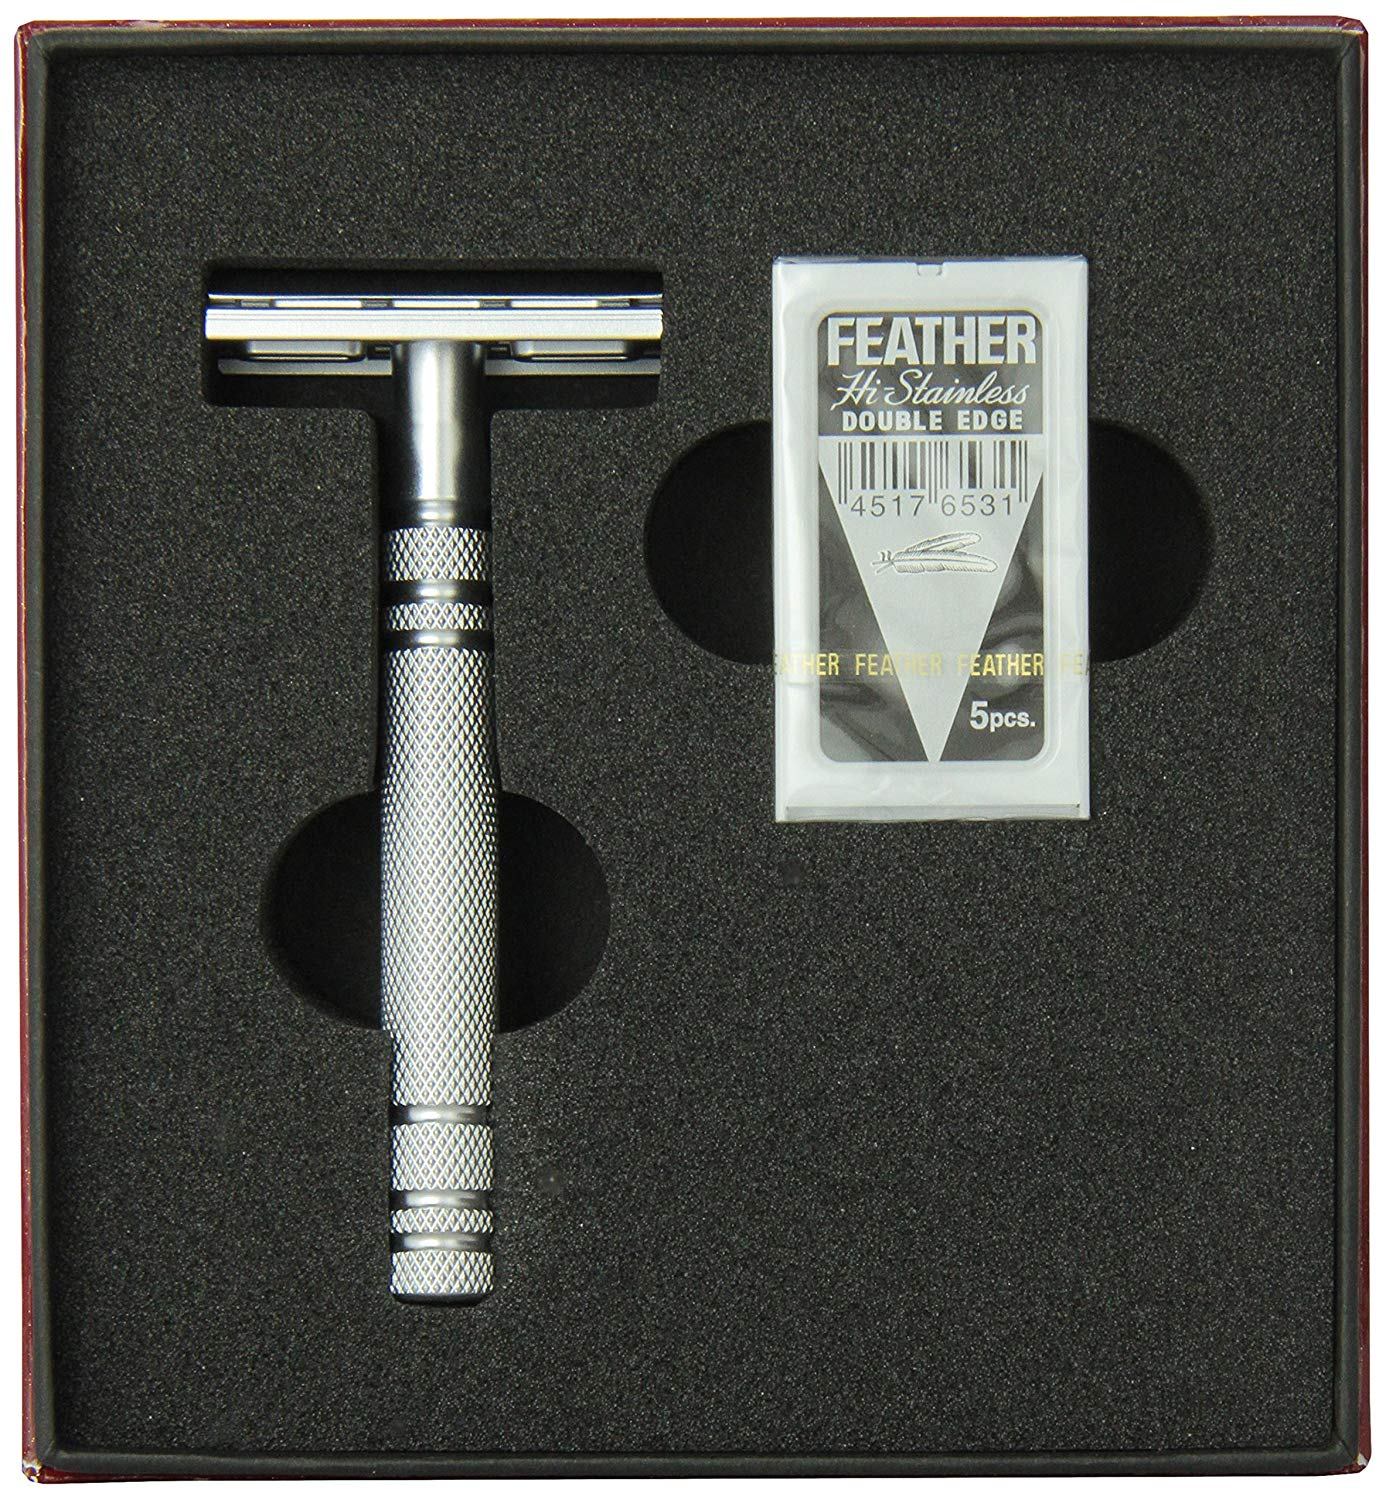 Feather AS-D2 Double Edge Safety Razor